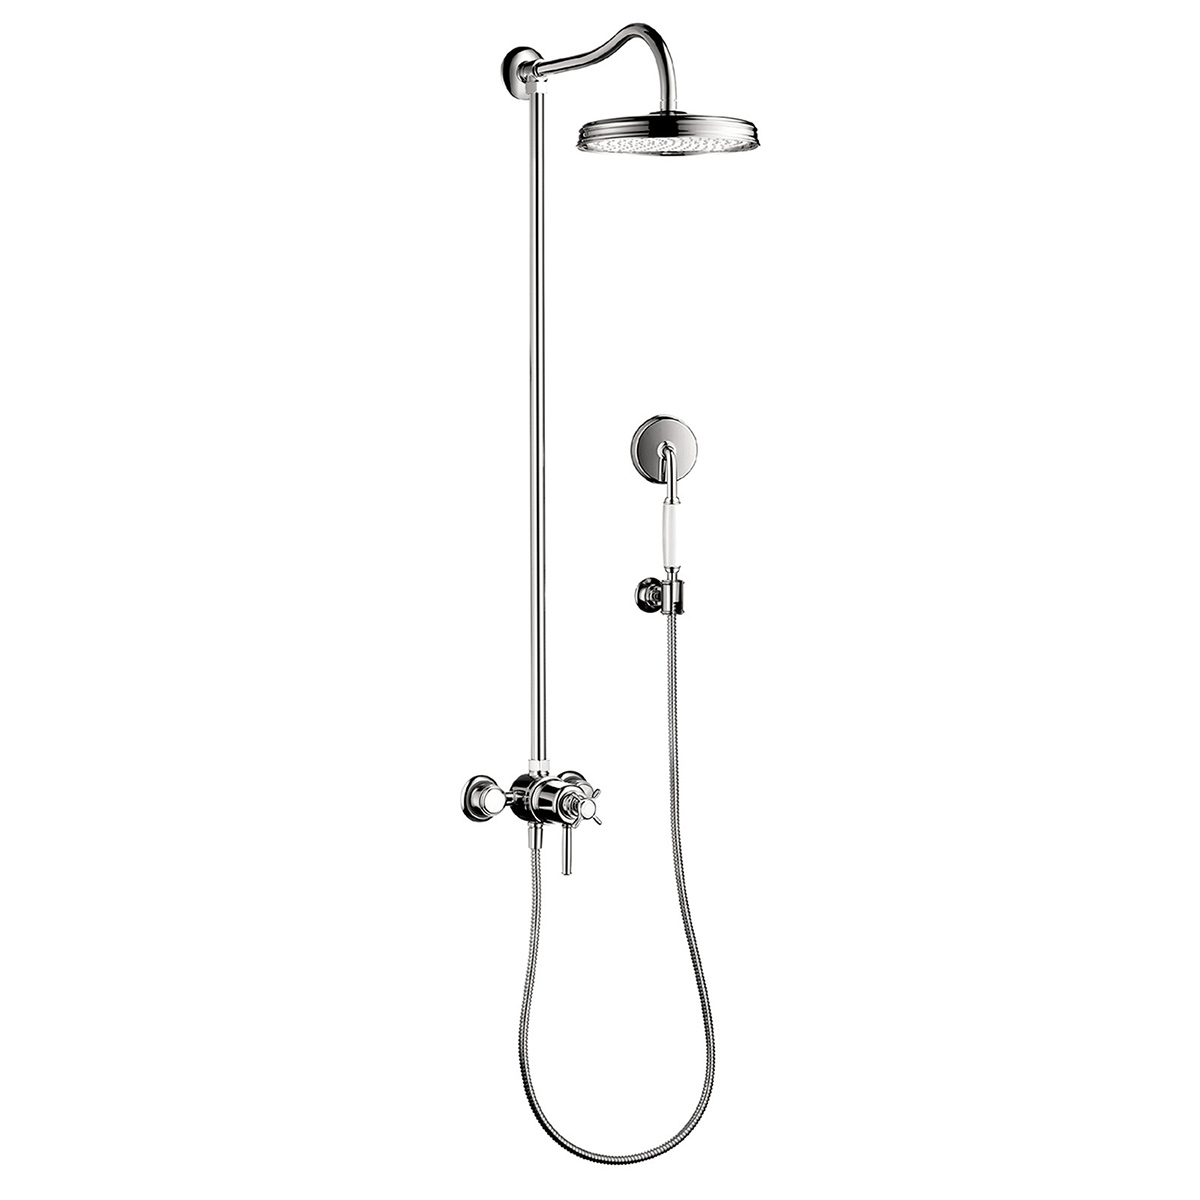 Bath4All - Hansgrohe 16570001 Chrome Axor Montreux Showerpipe Shower ...